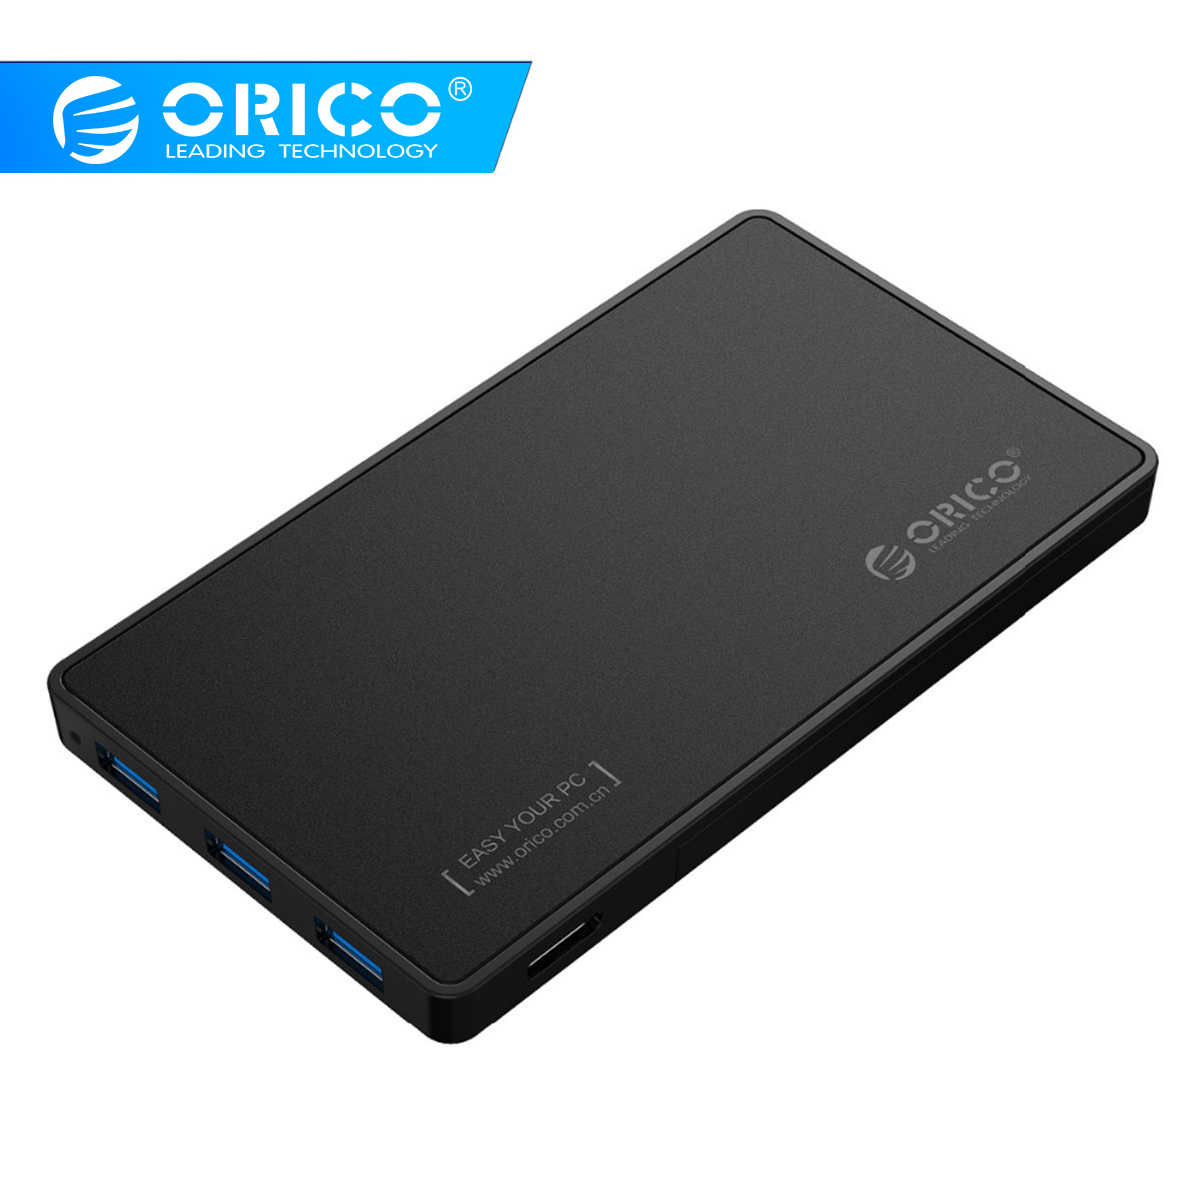 2.5 HDD Enclosure ORICO USB 3.0 Hard Drive Case with 3 Ports USB3.0 HUB Tool Free Design Driver Not Required2.5 HDD Enclosure ORICO USB 3.0 Hard Drive Case with 3 Ports USB3.0 HUB Tool Free Design Driver Not Required